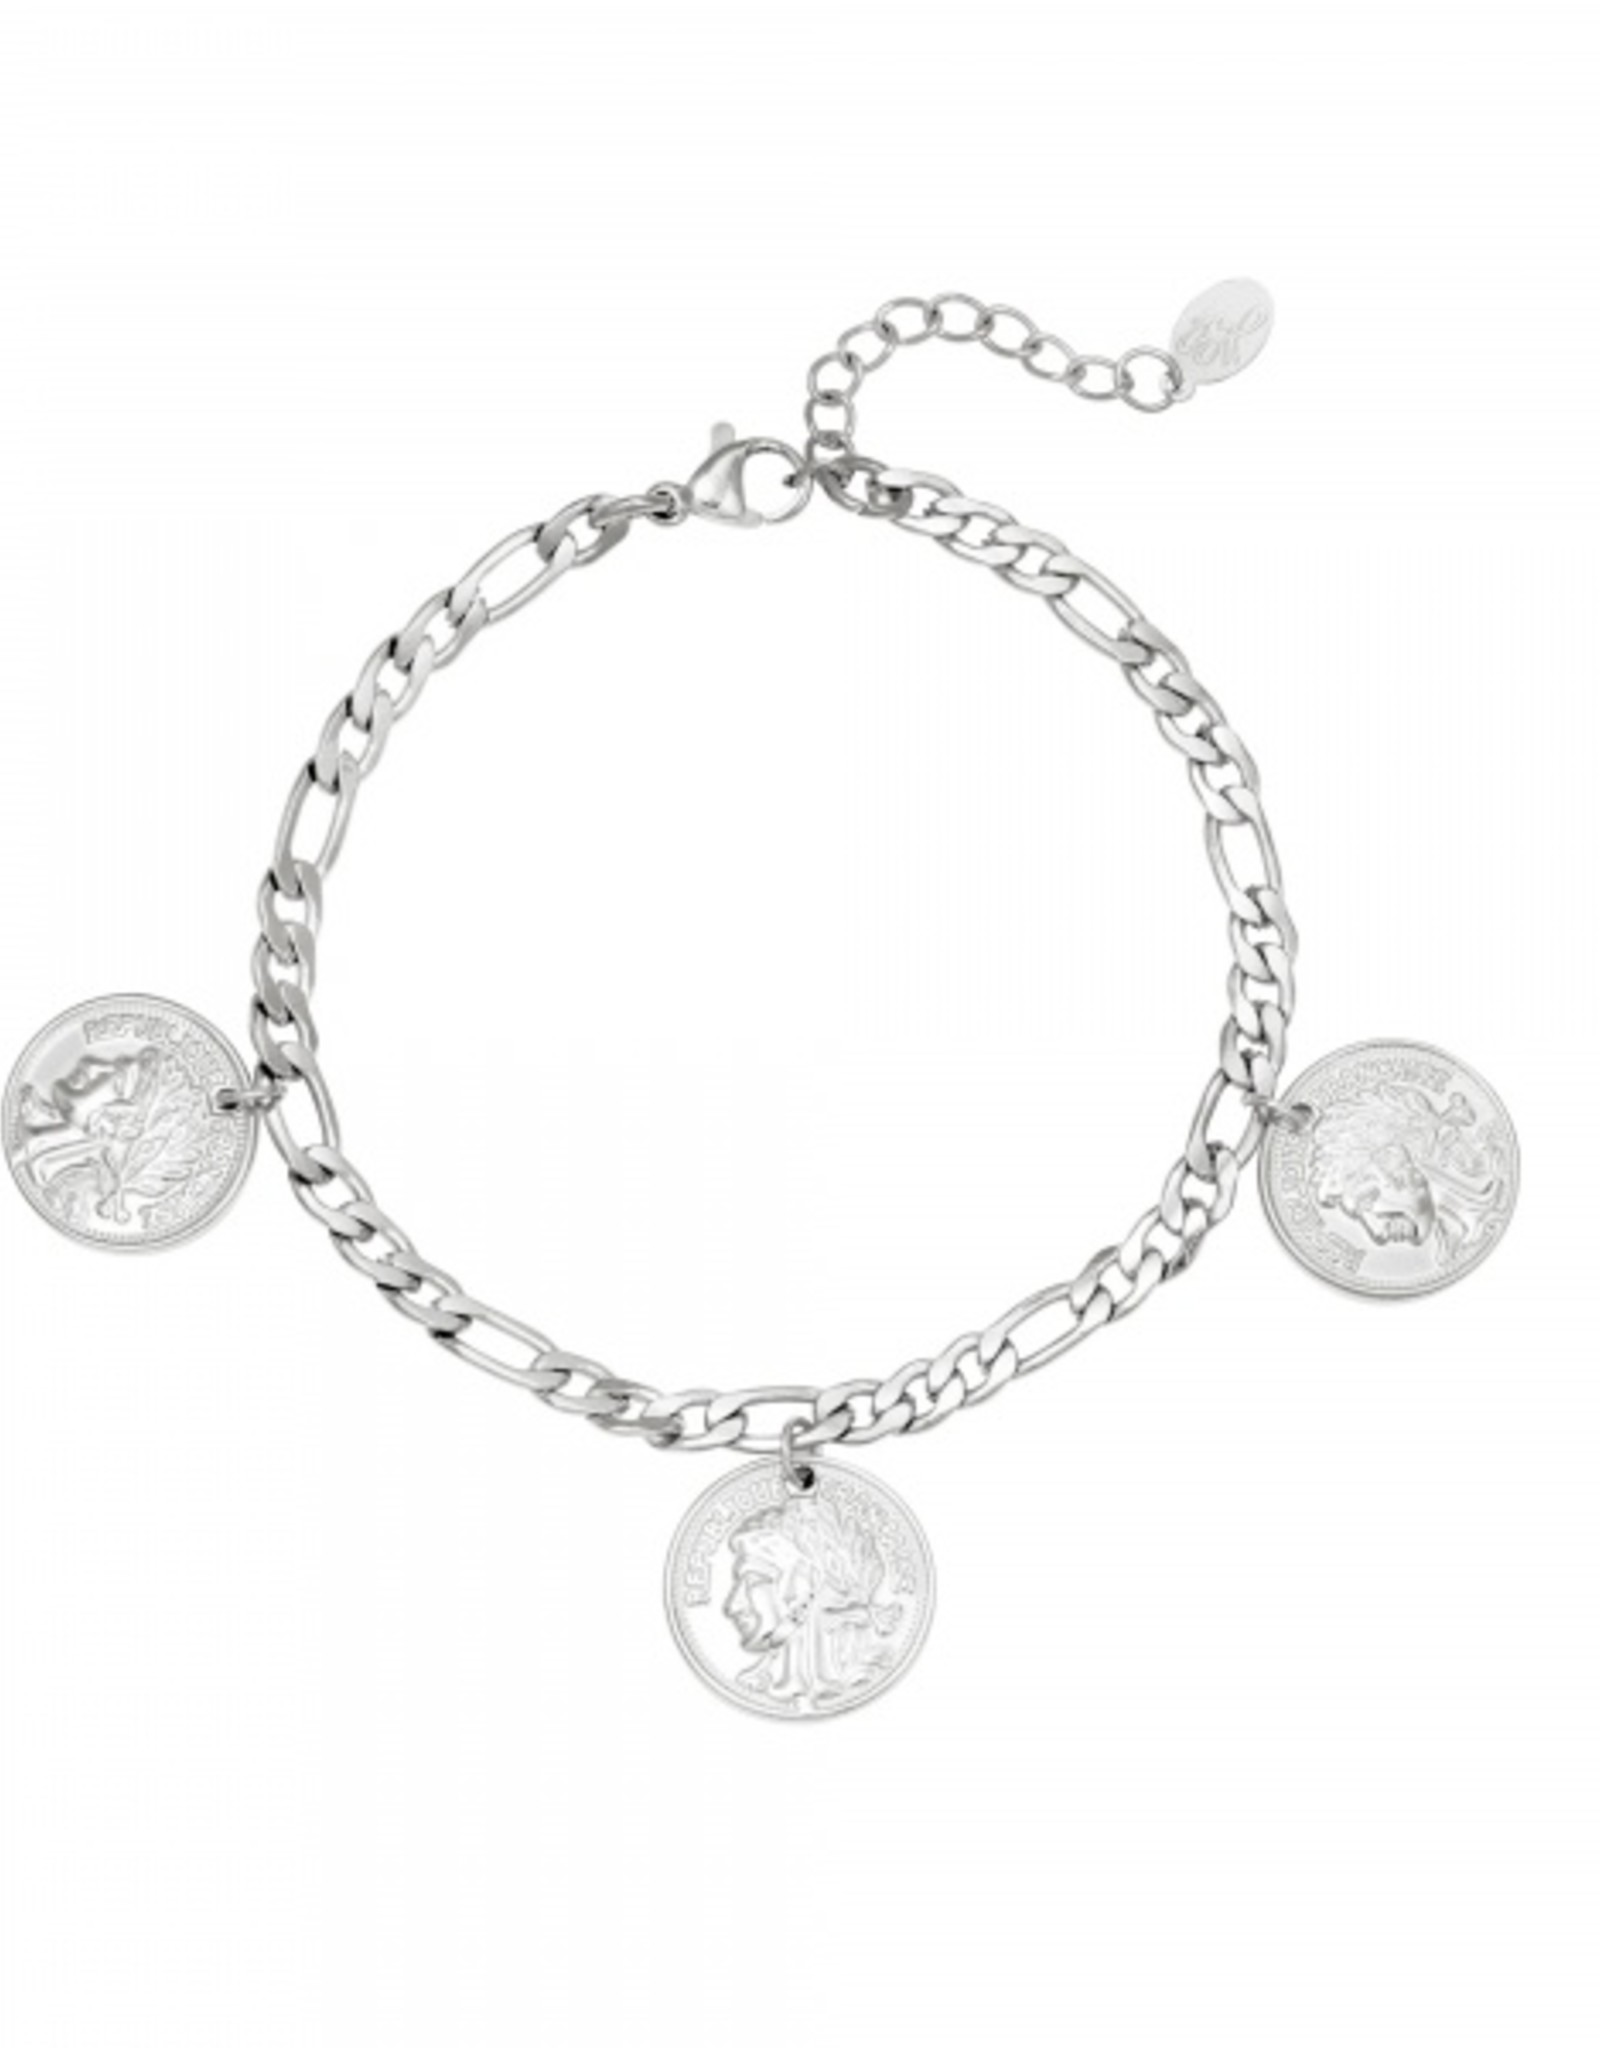 Bracelet ancient coinage silver